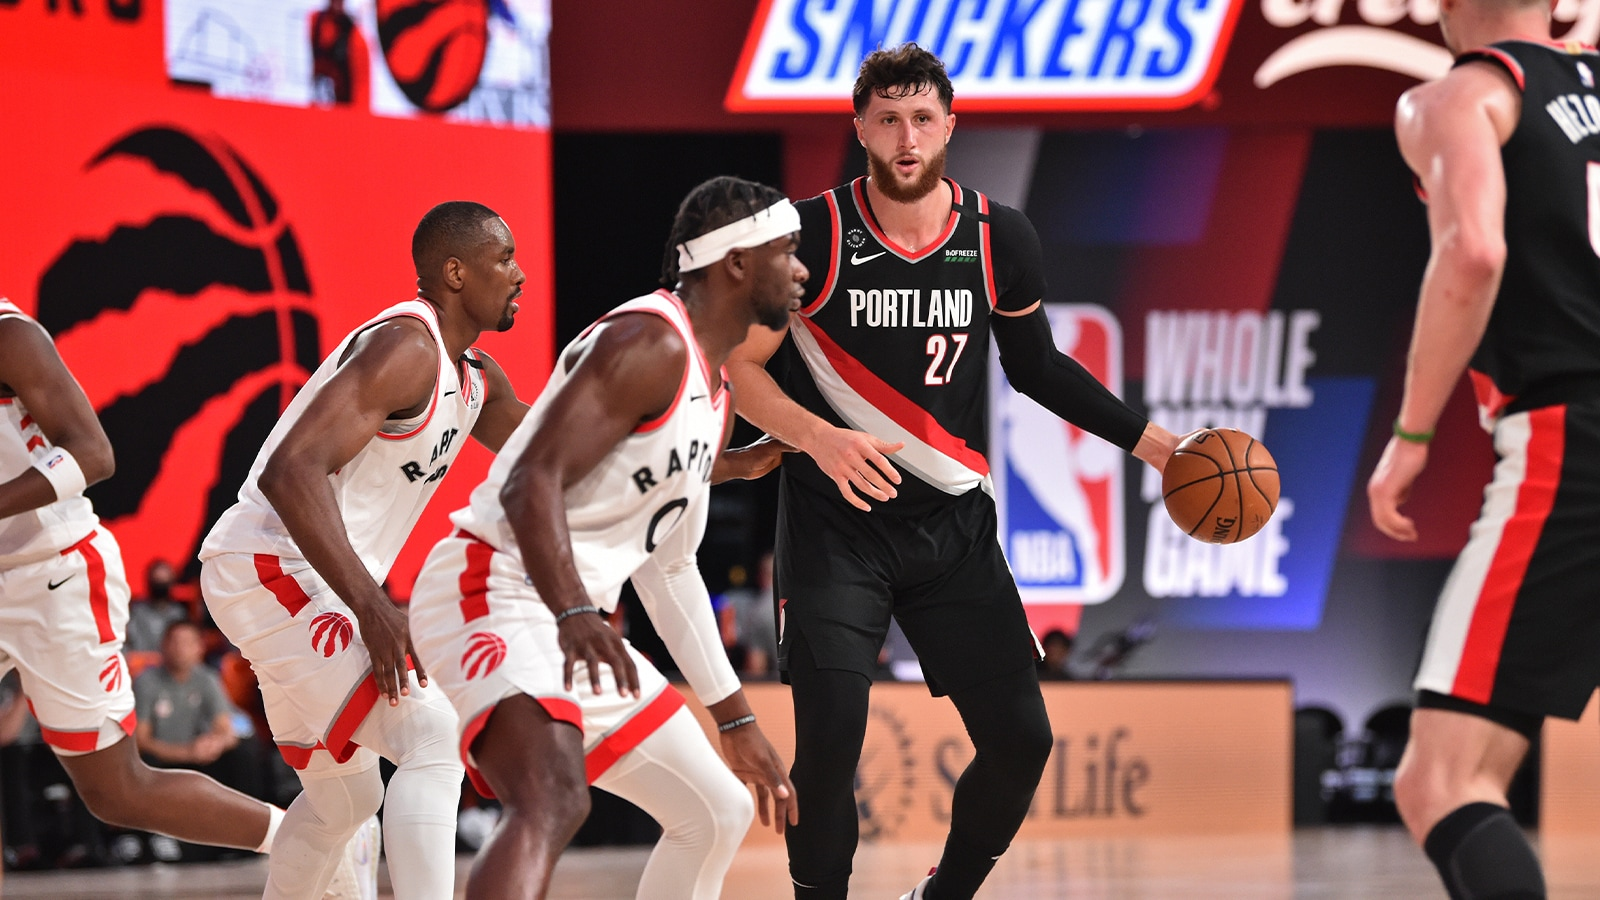 Portland's Jusuf Nurkic in action